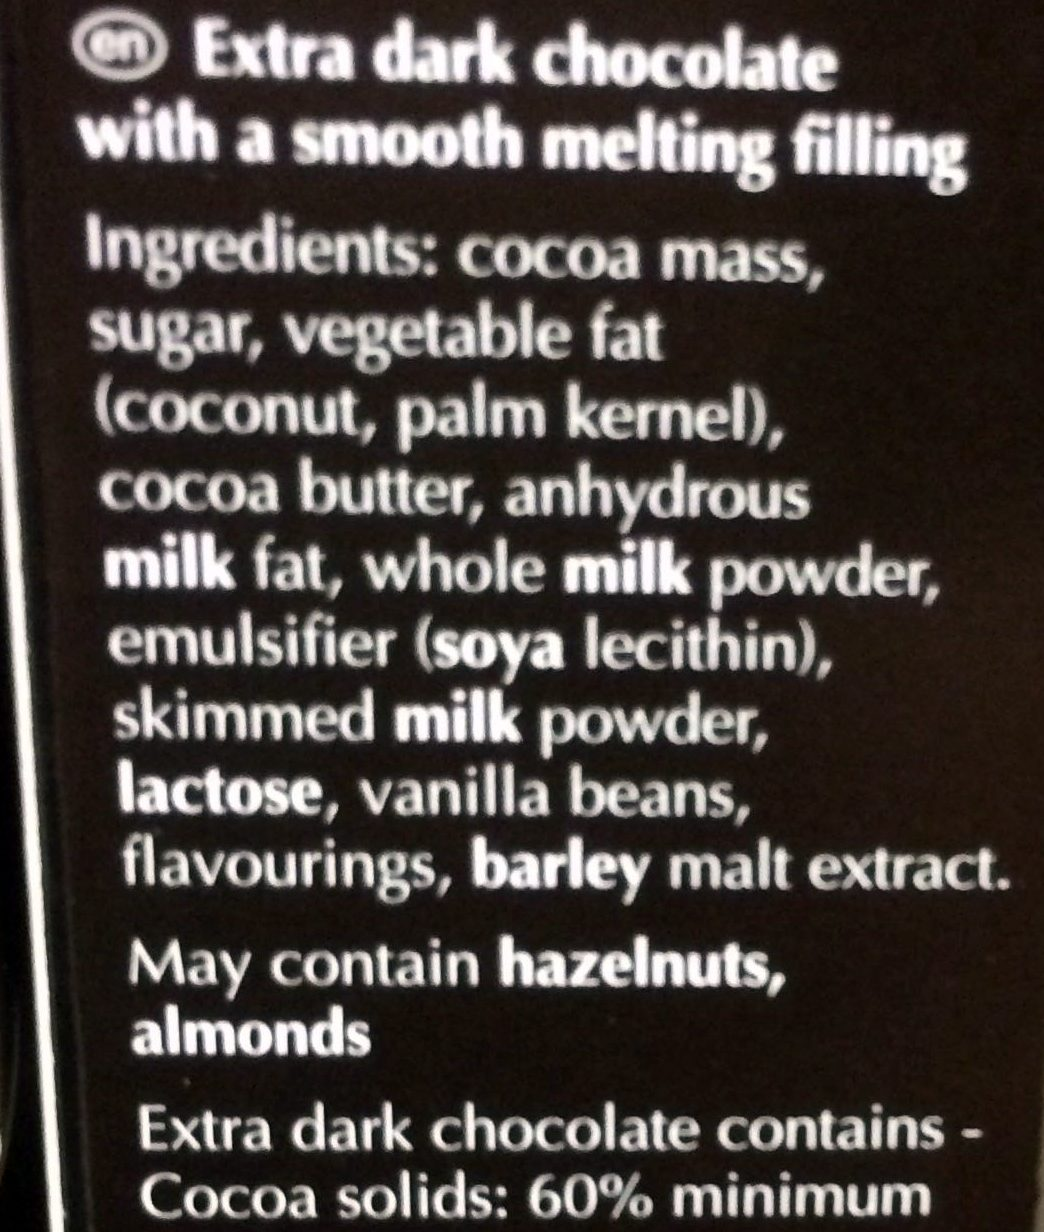 Extra dark chocolate with smooth melting feeling - Ingredients